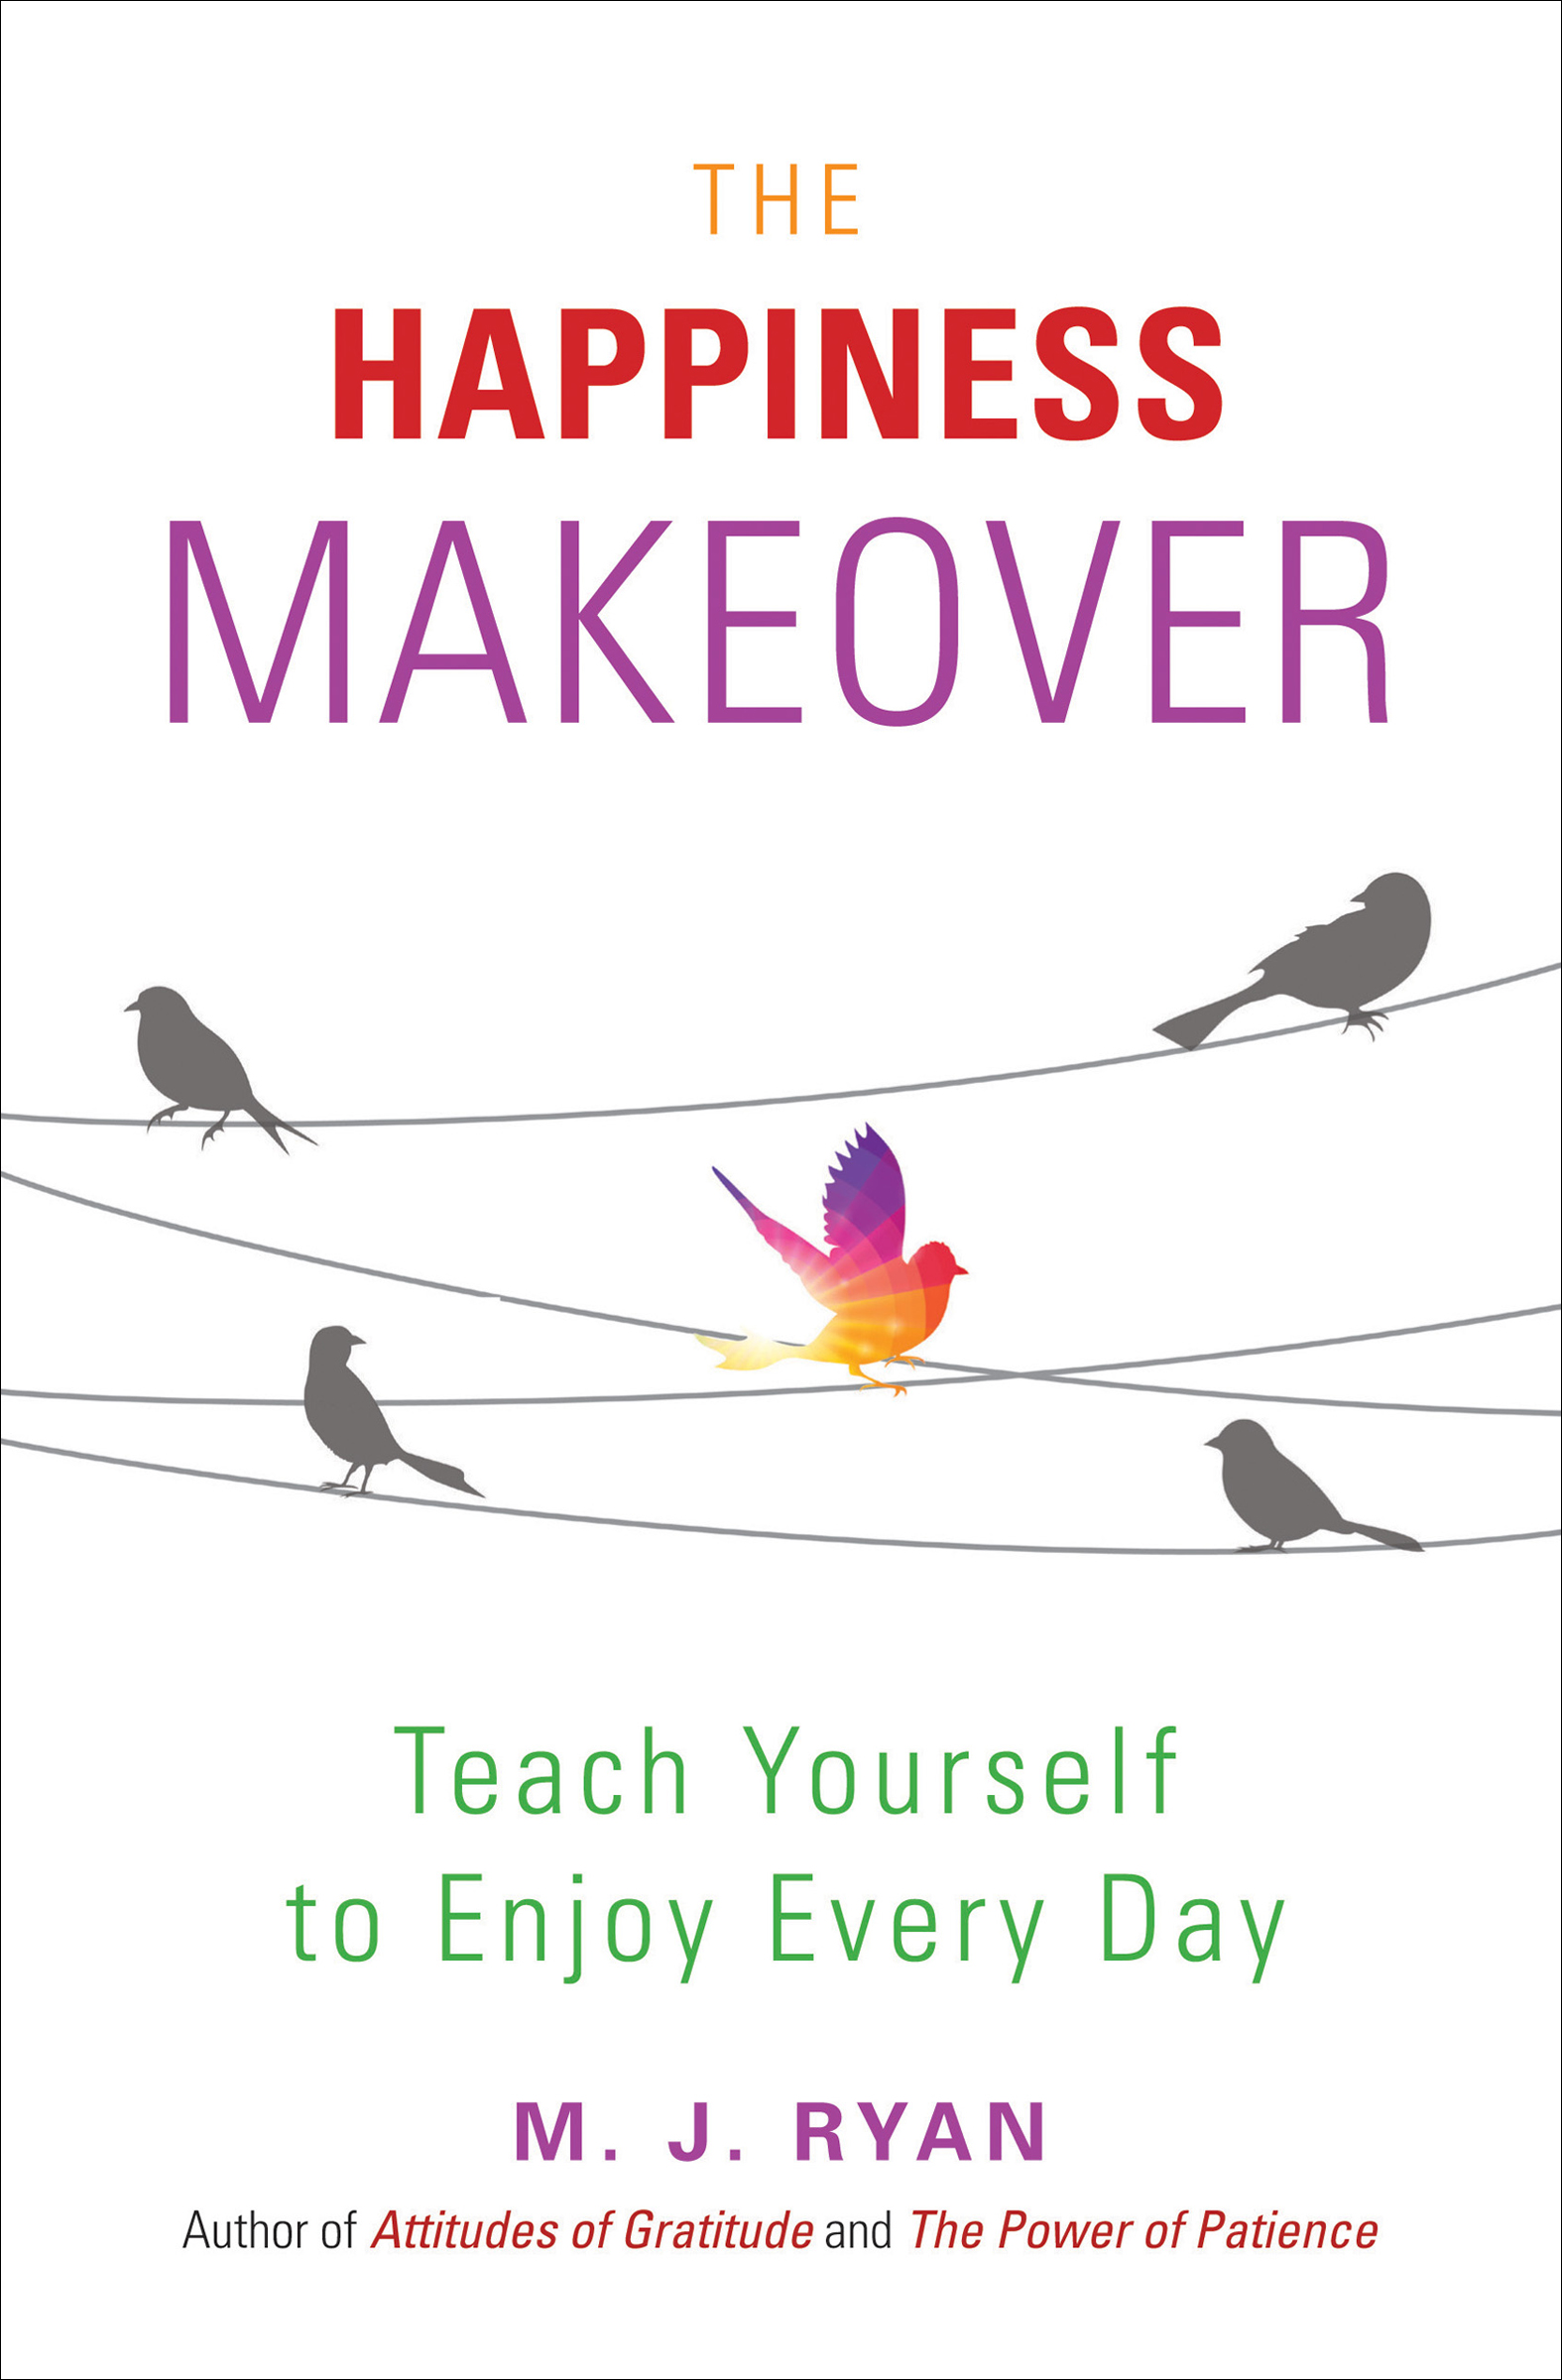 The Happiness Makeover Teach Yourself to Enjoy Every Day